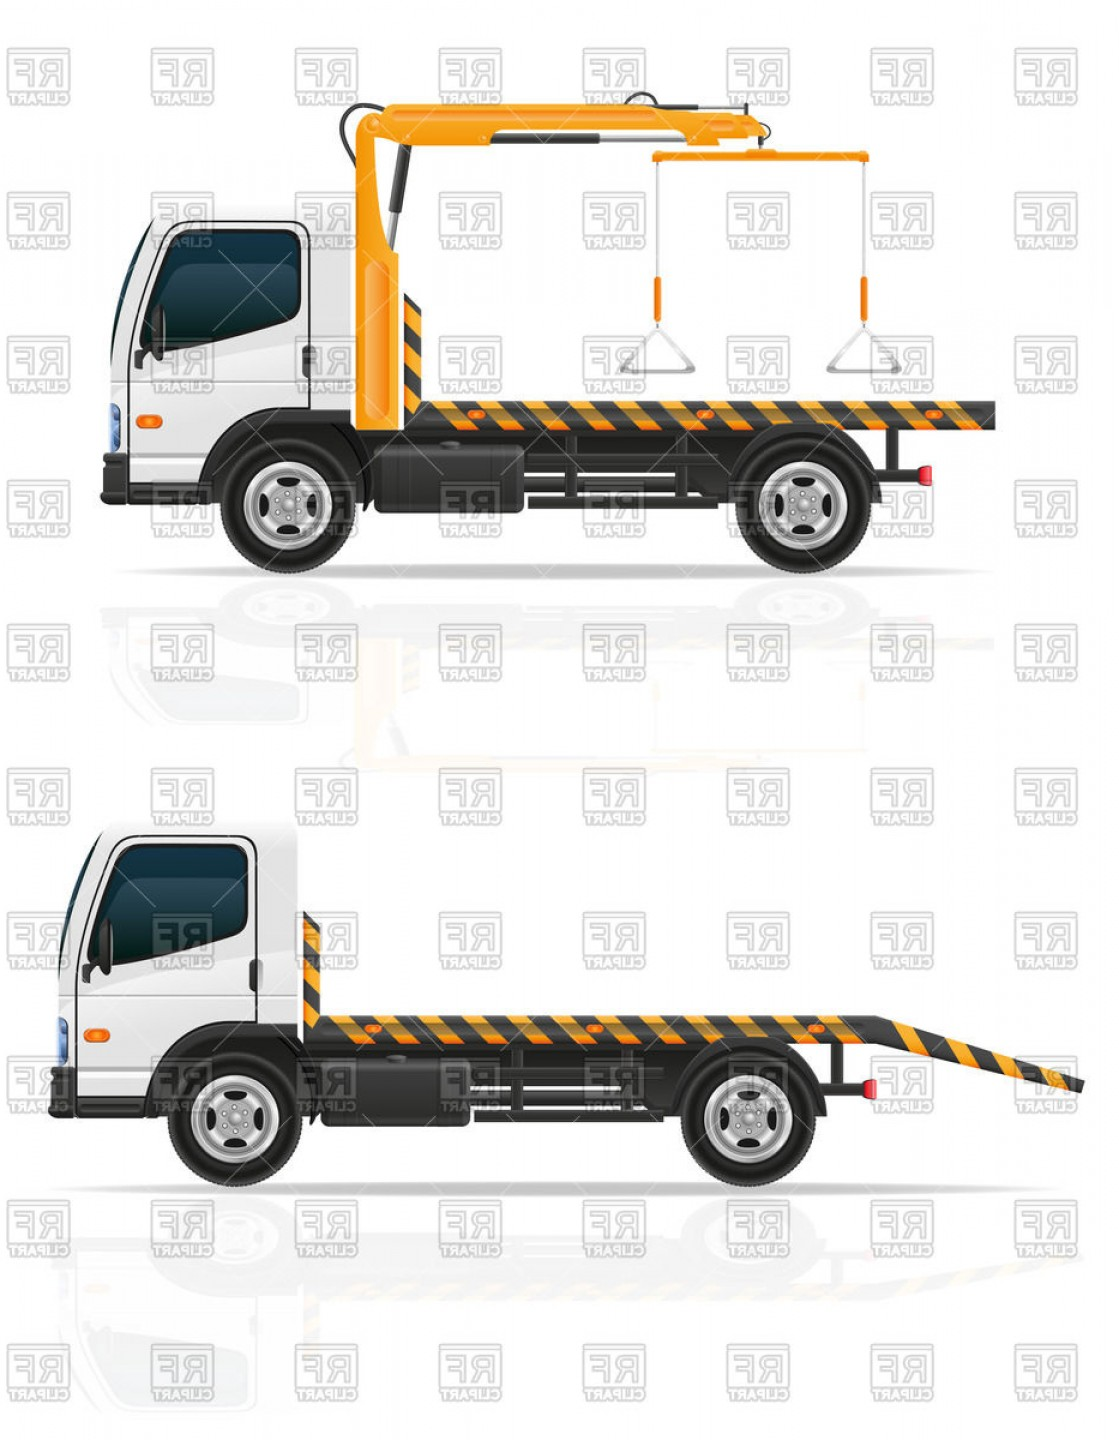 Towing Vector Clip Art: Tow Truck Breakdown Van Emergency Car Side View Vector Clipart